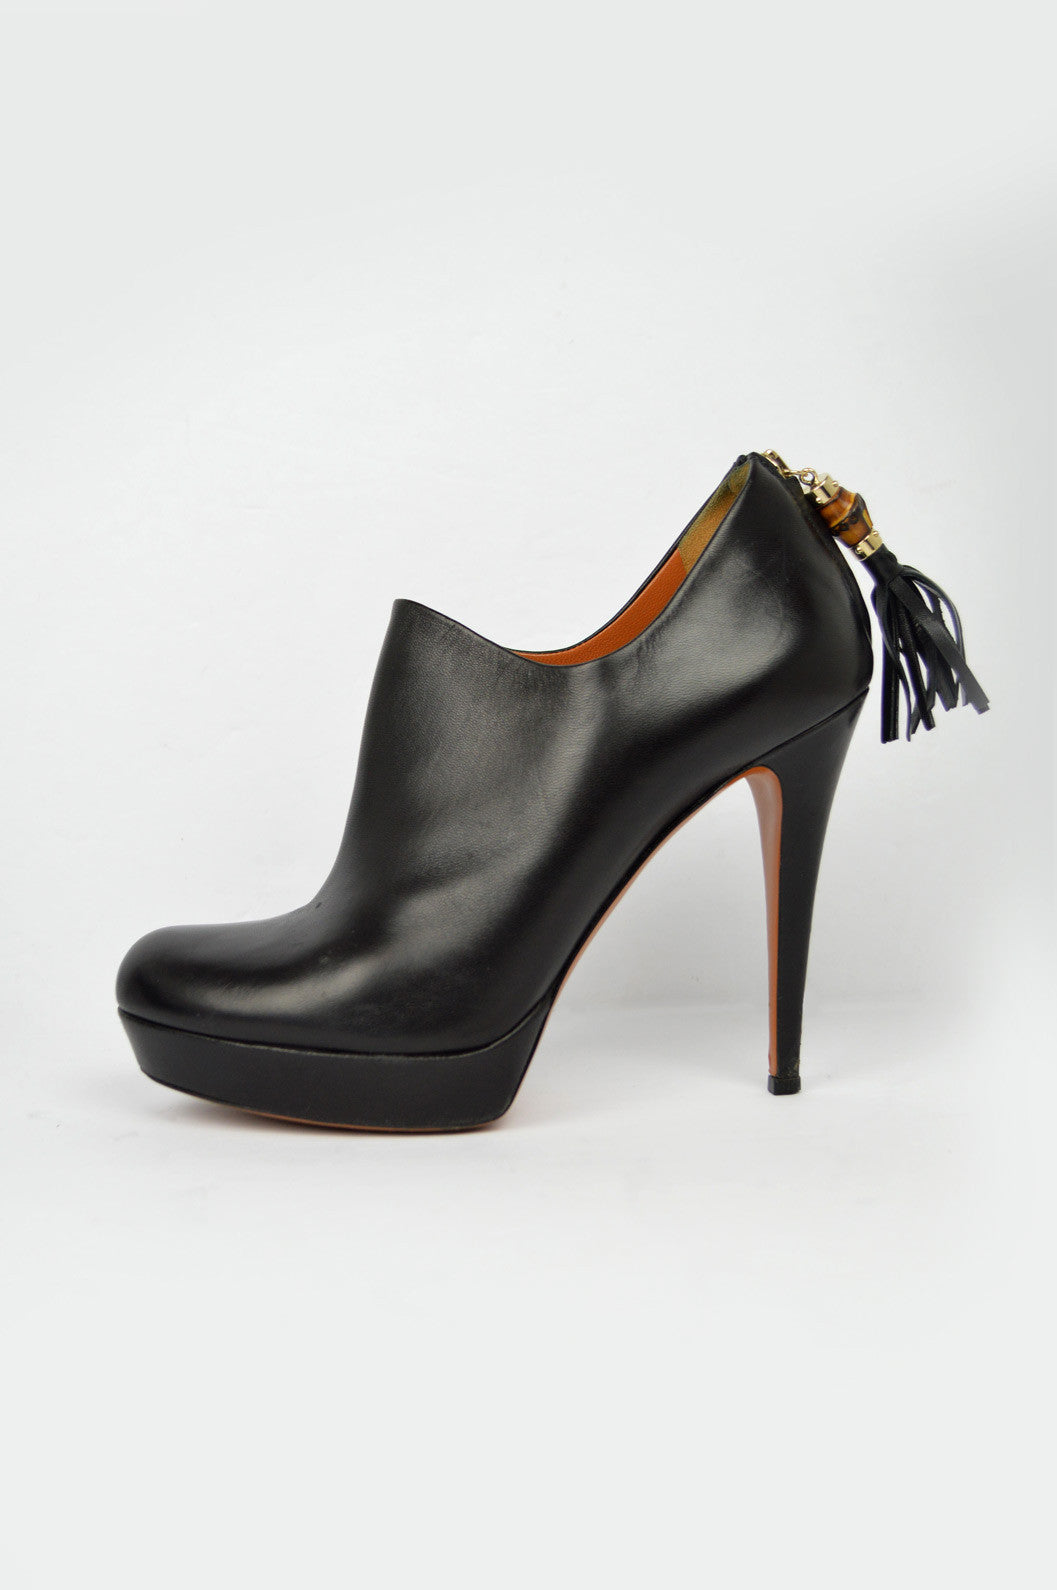 Black Leather Booties With Bamboo Tassles